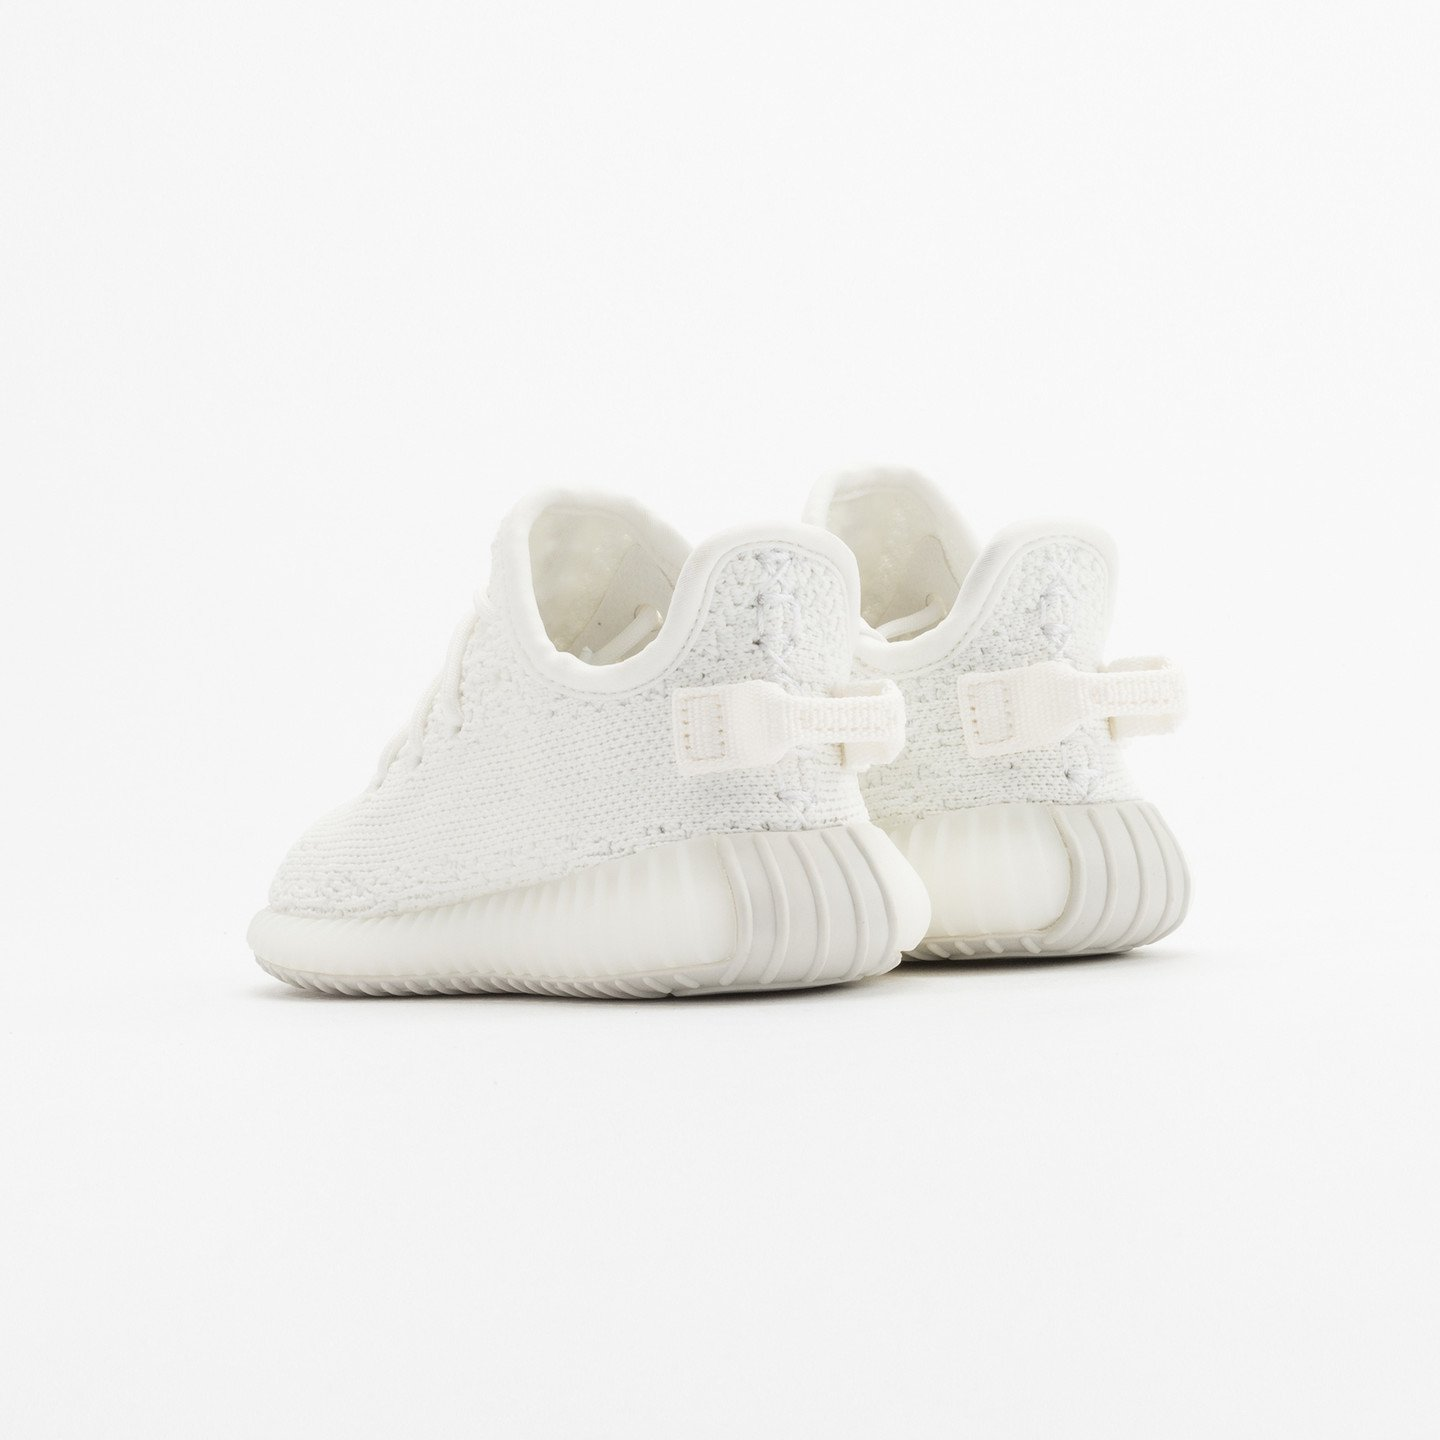 Adidas Yeezy Boost 350 V2 Infant White / Clear White BB6373-22